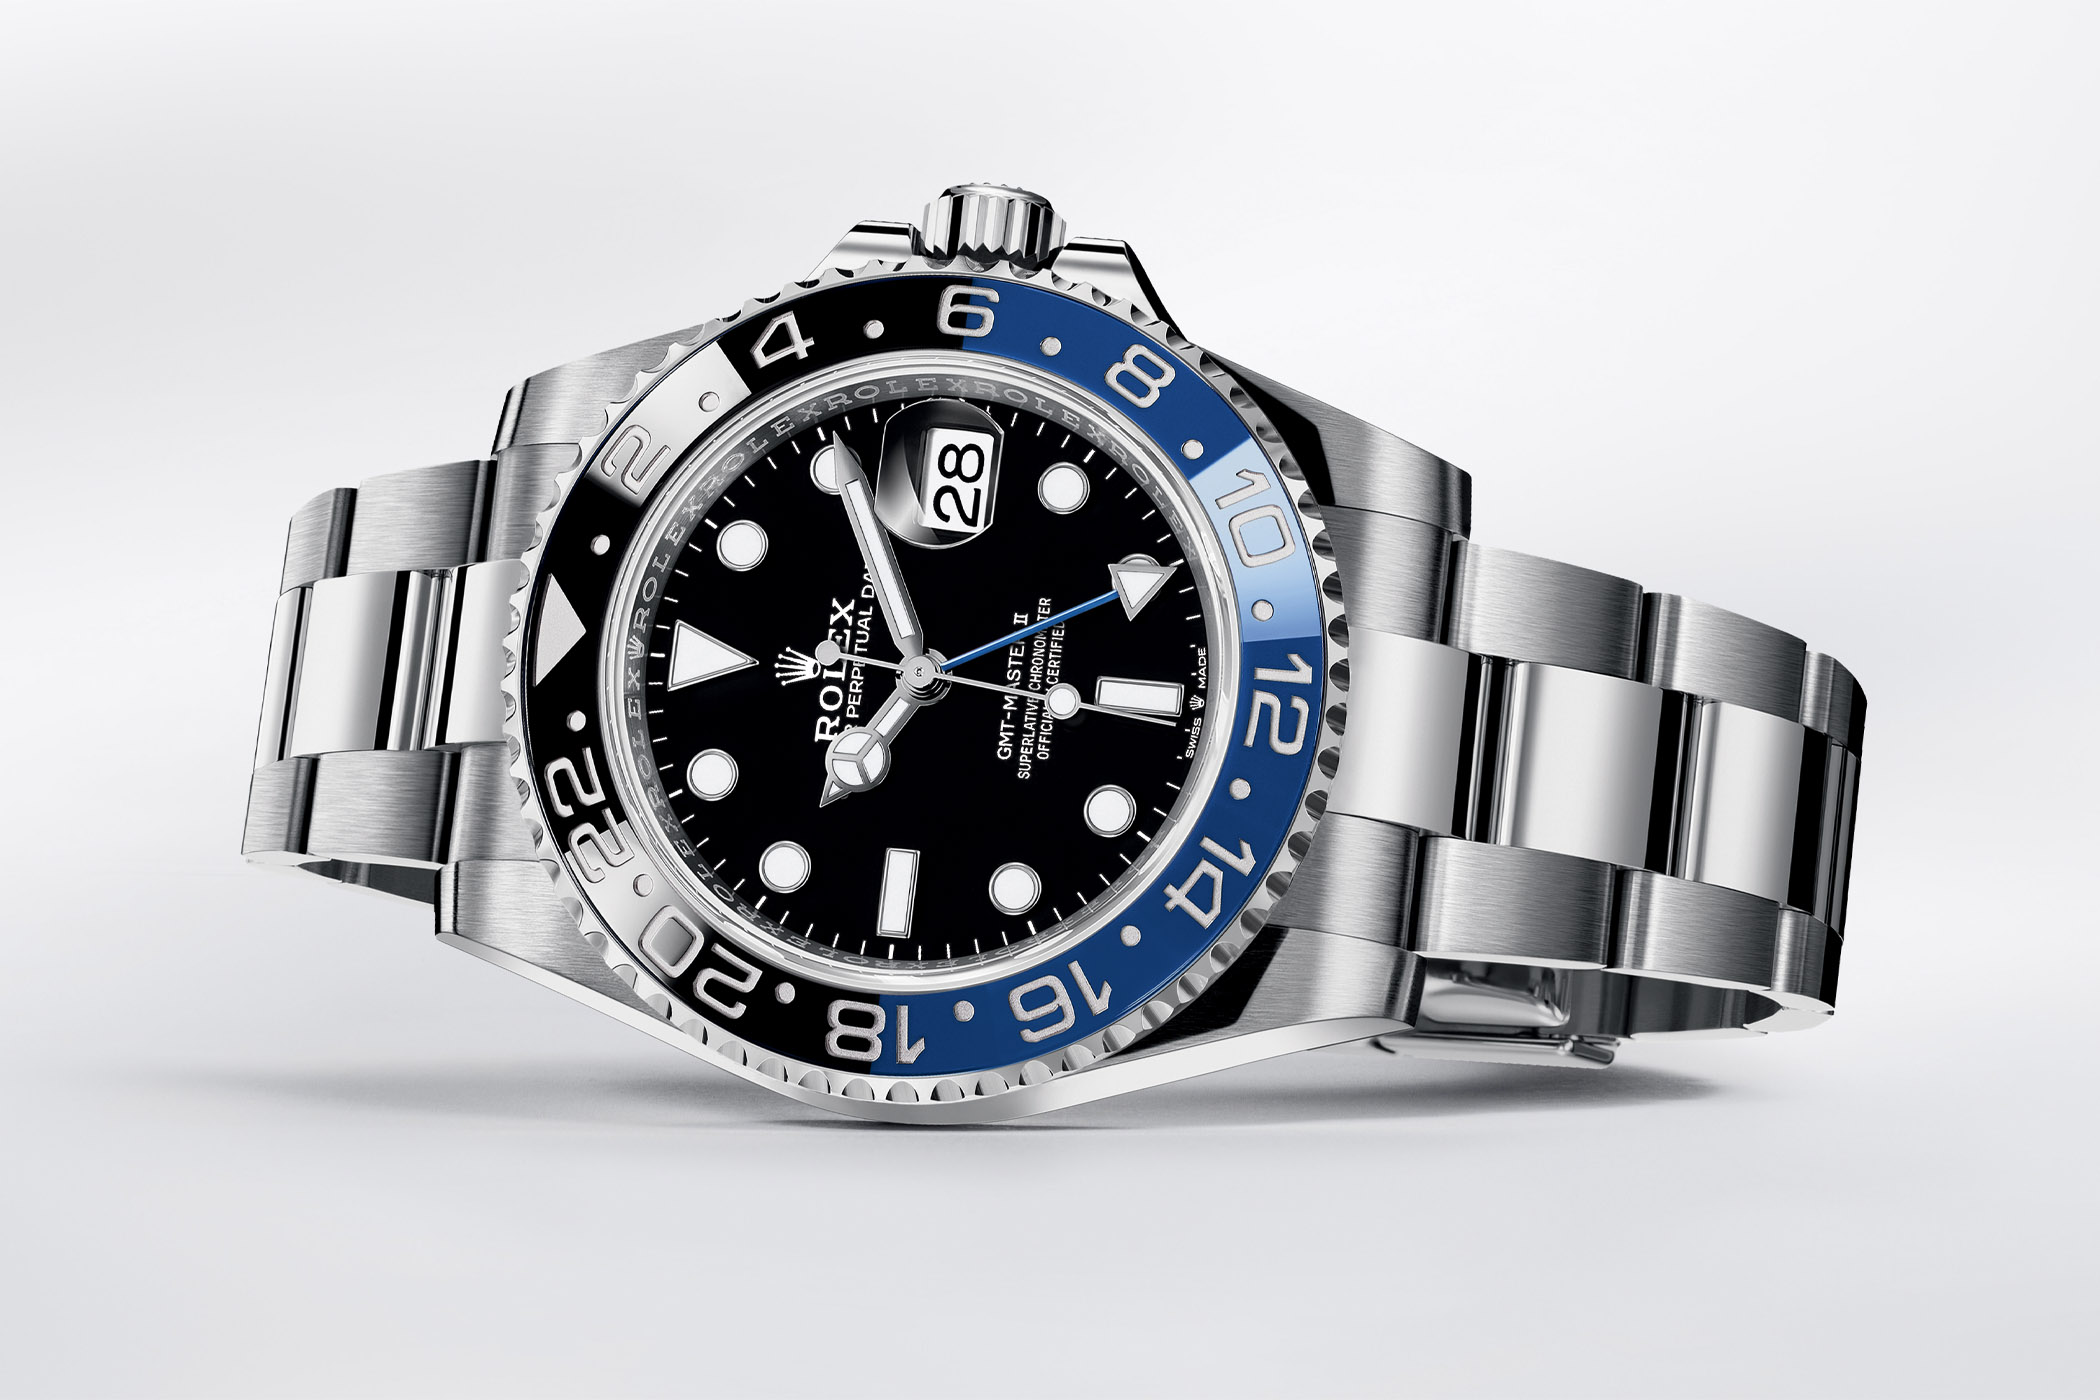 Rolex GMT Master II 126710BLNR and 126710BLRO with Oyster Bracelet 2021